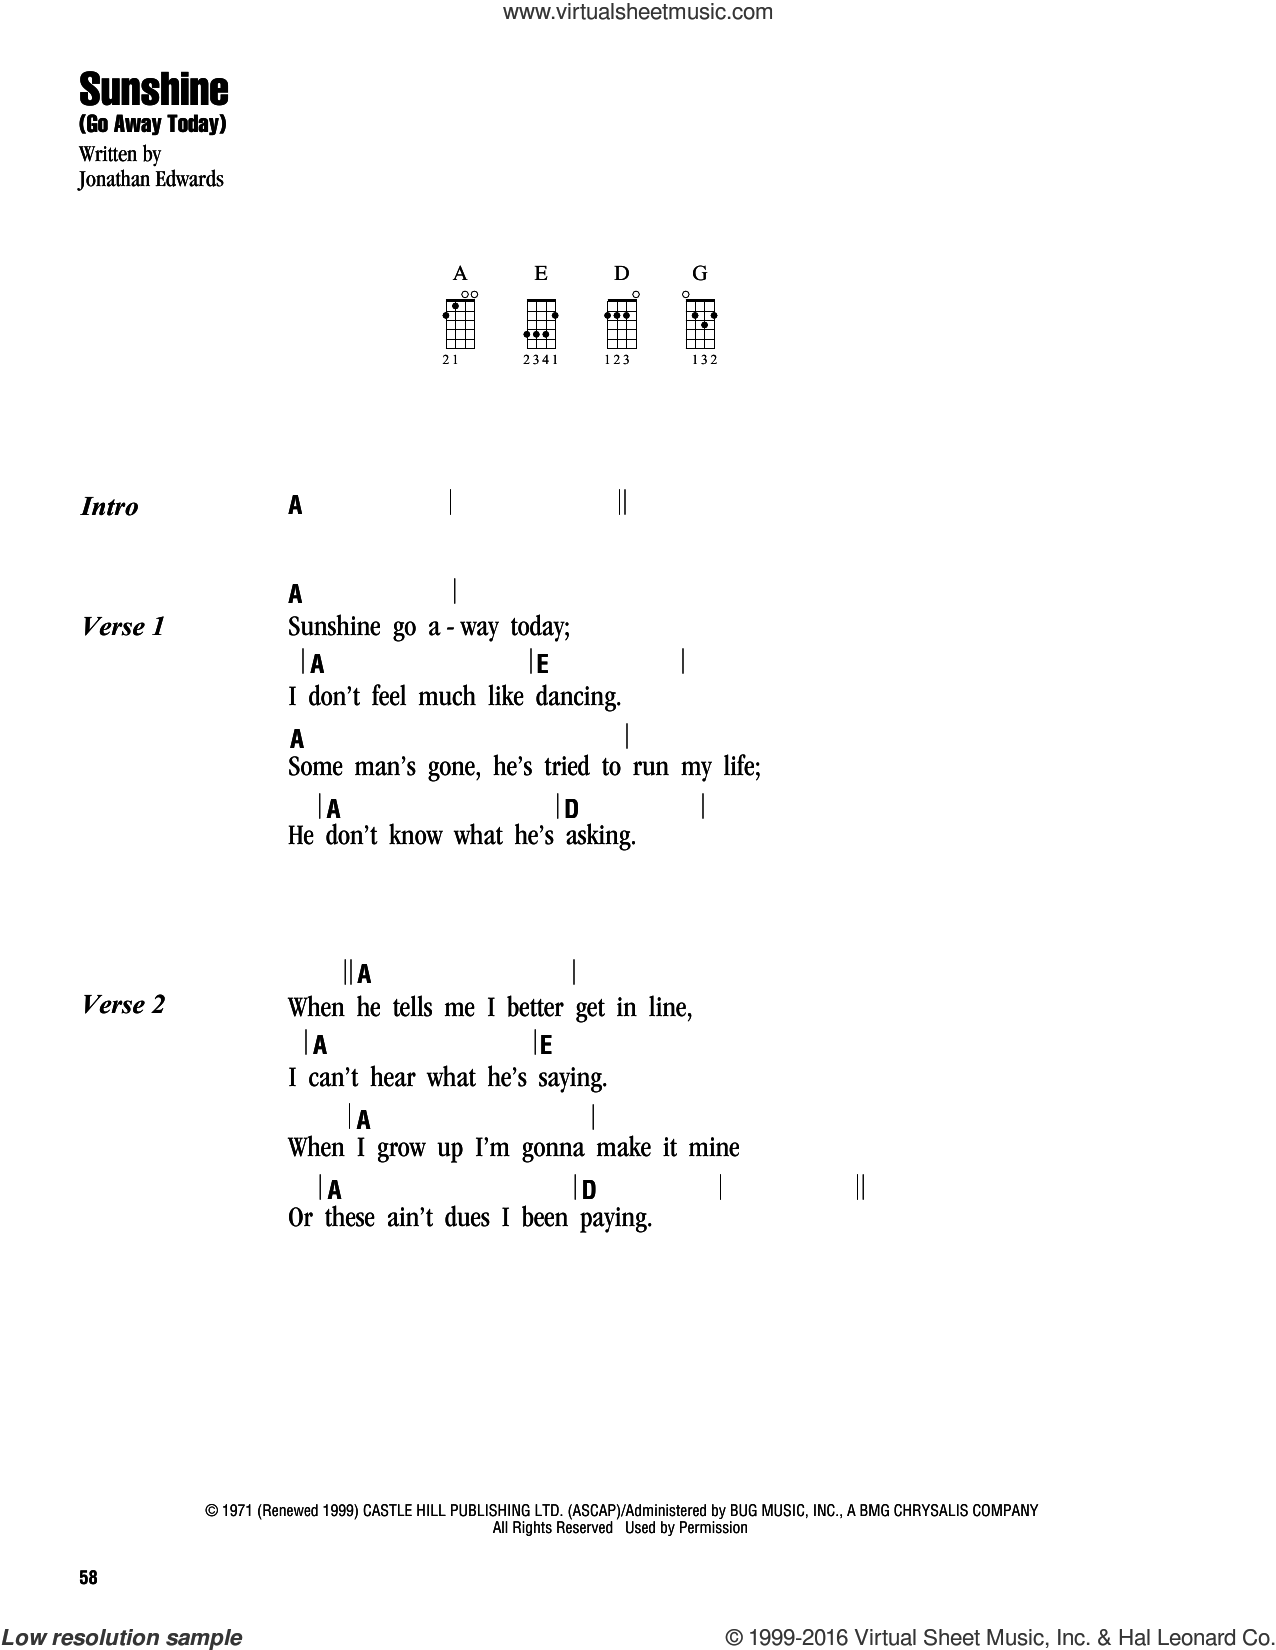 Sunshine (Go Away Today) sheet music for ukulele (chords) by Jonathan Edwards, intermediate skill level